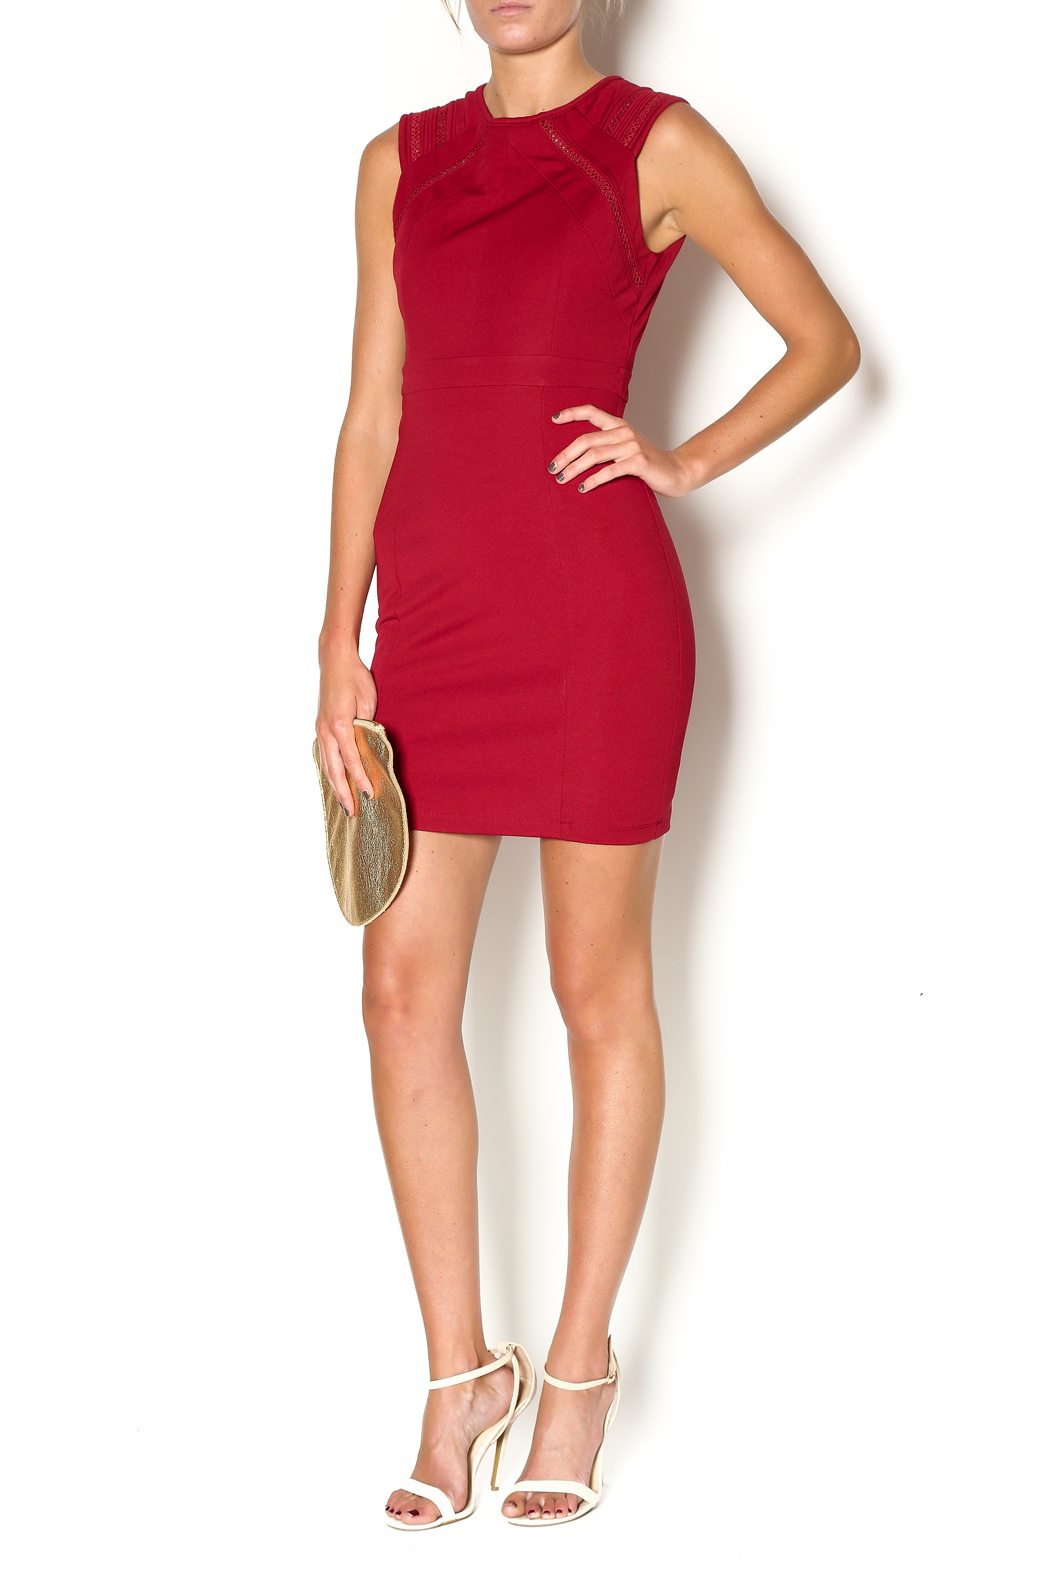 Abby & Taylor Burgundy Sleeveless Dress - Front Full Image